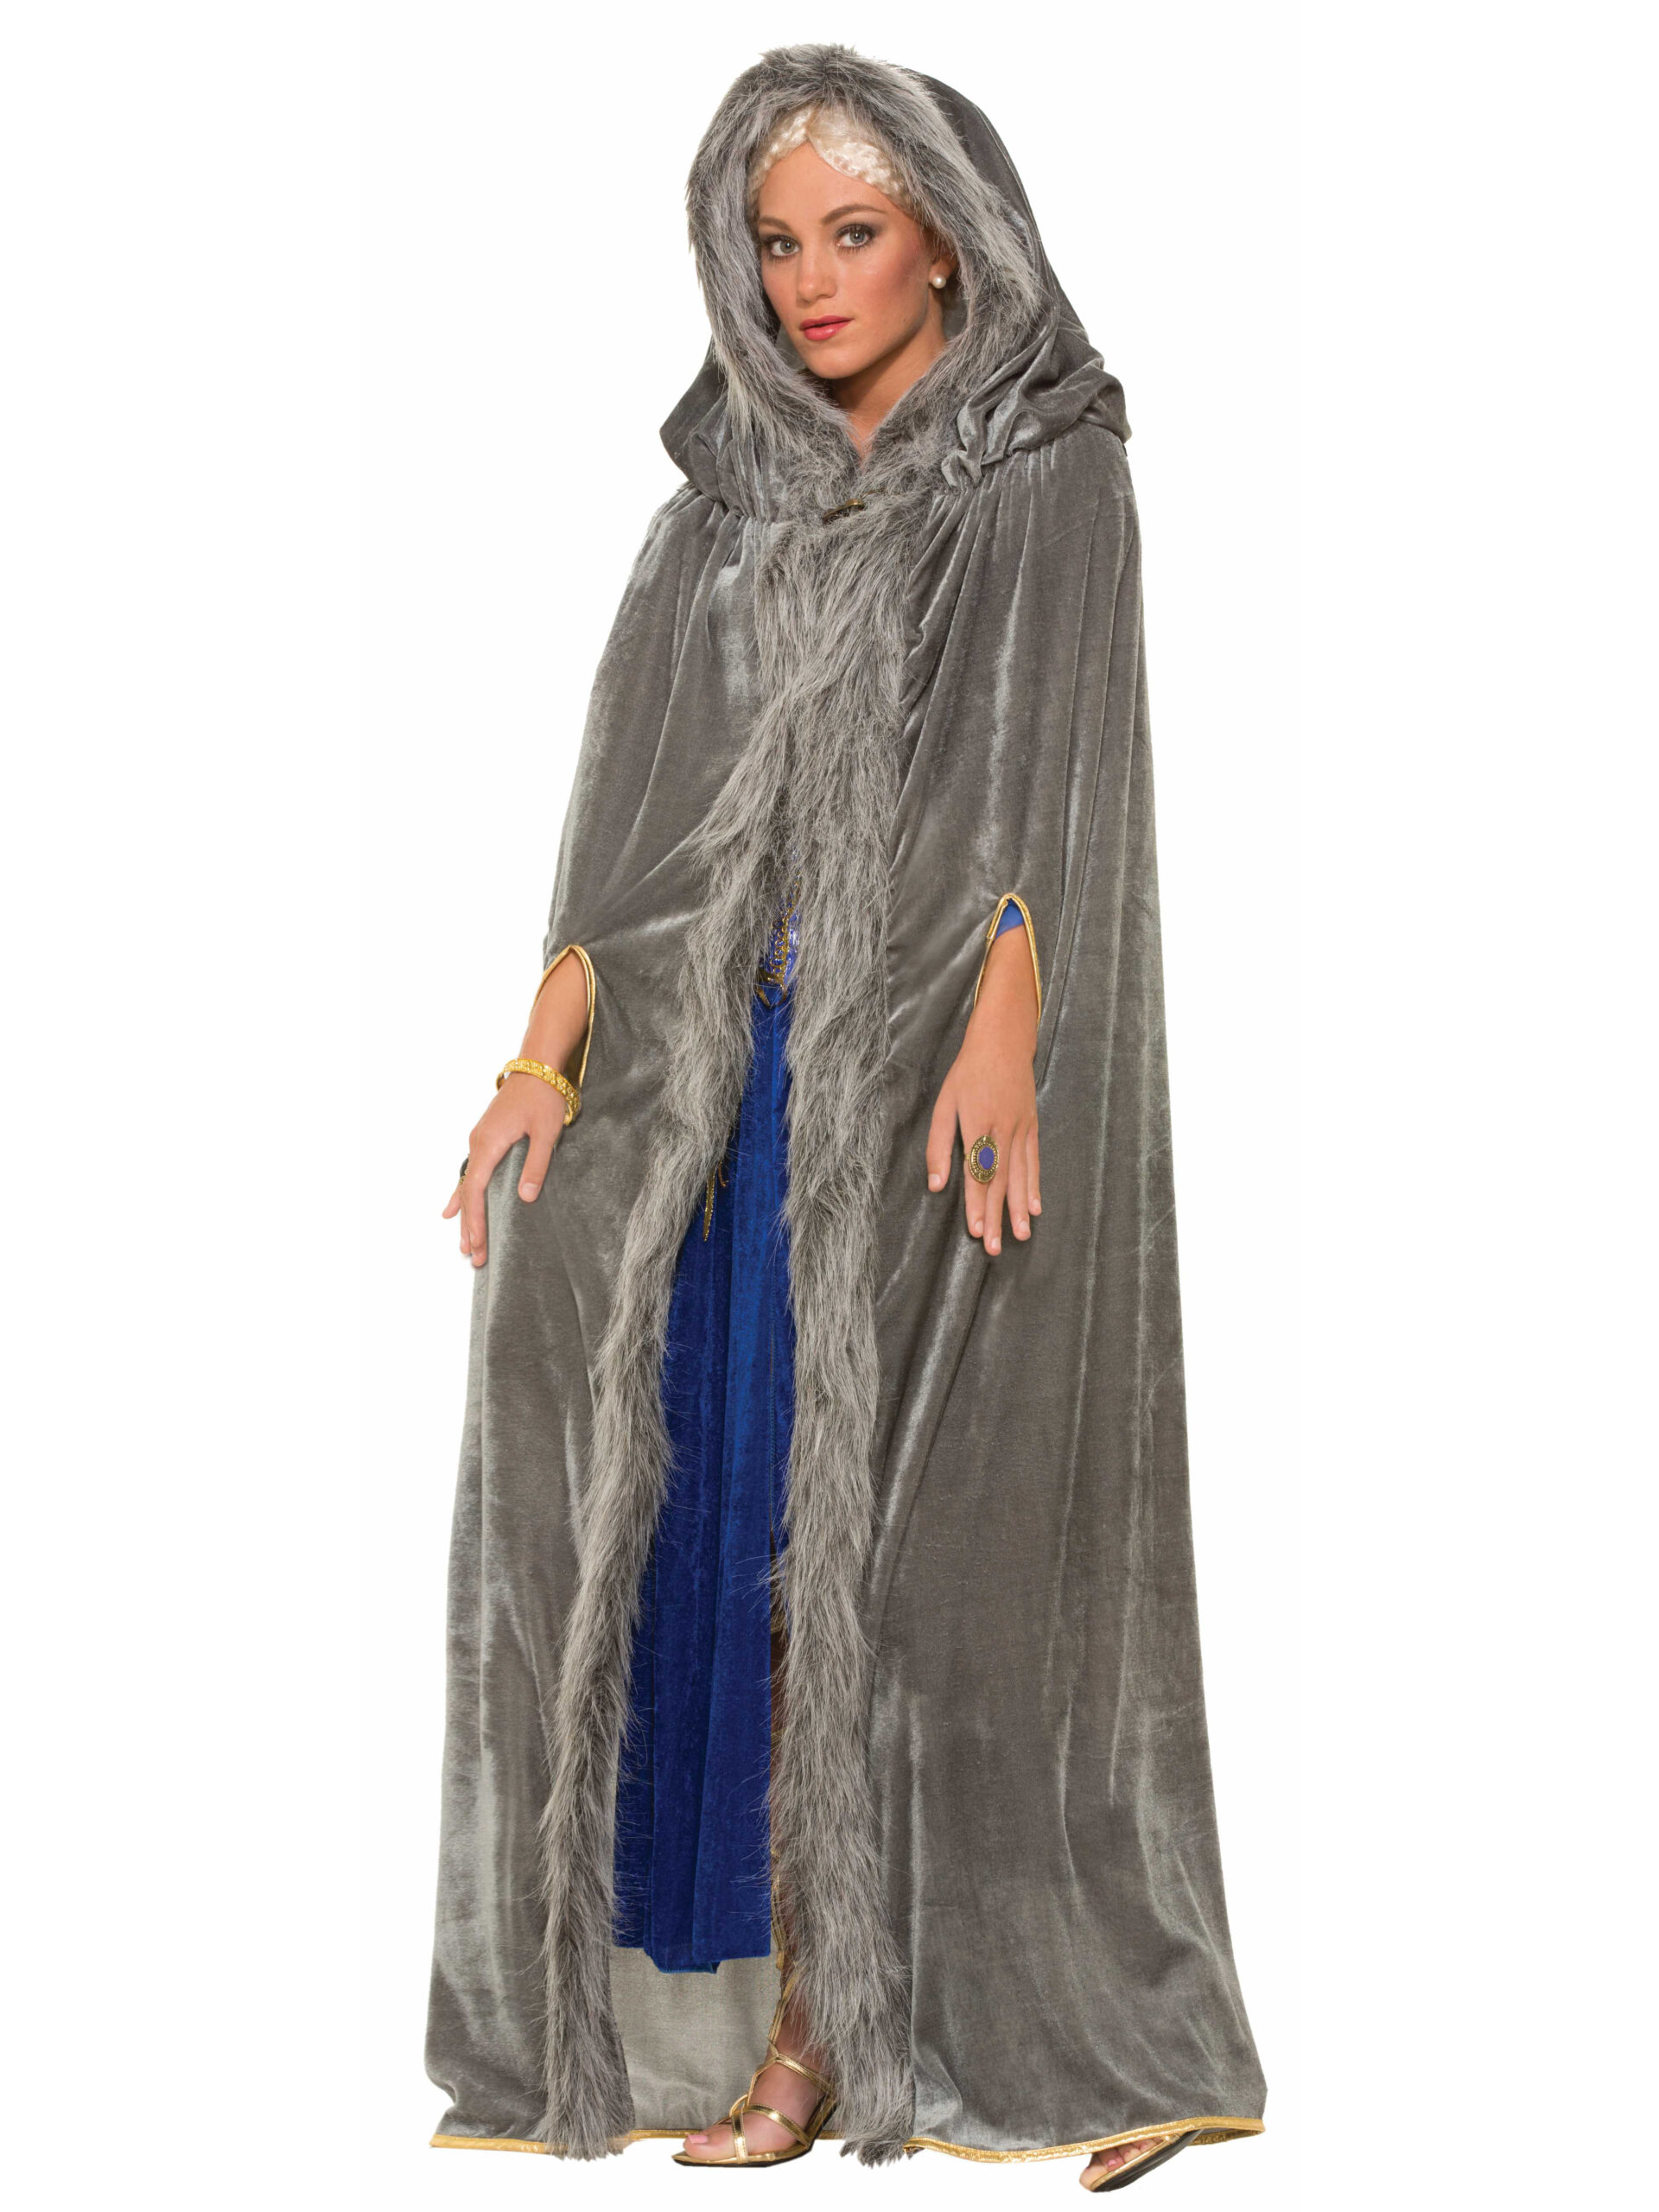 adult female in blue dress and hooded fur cloak costume